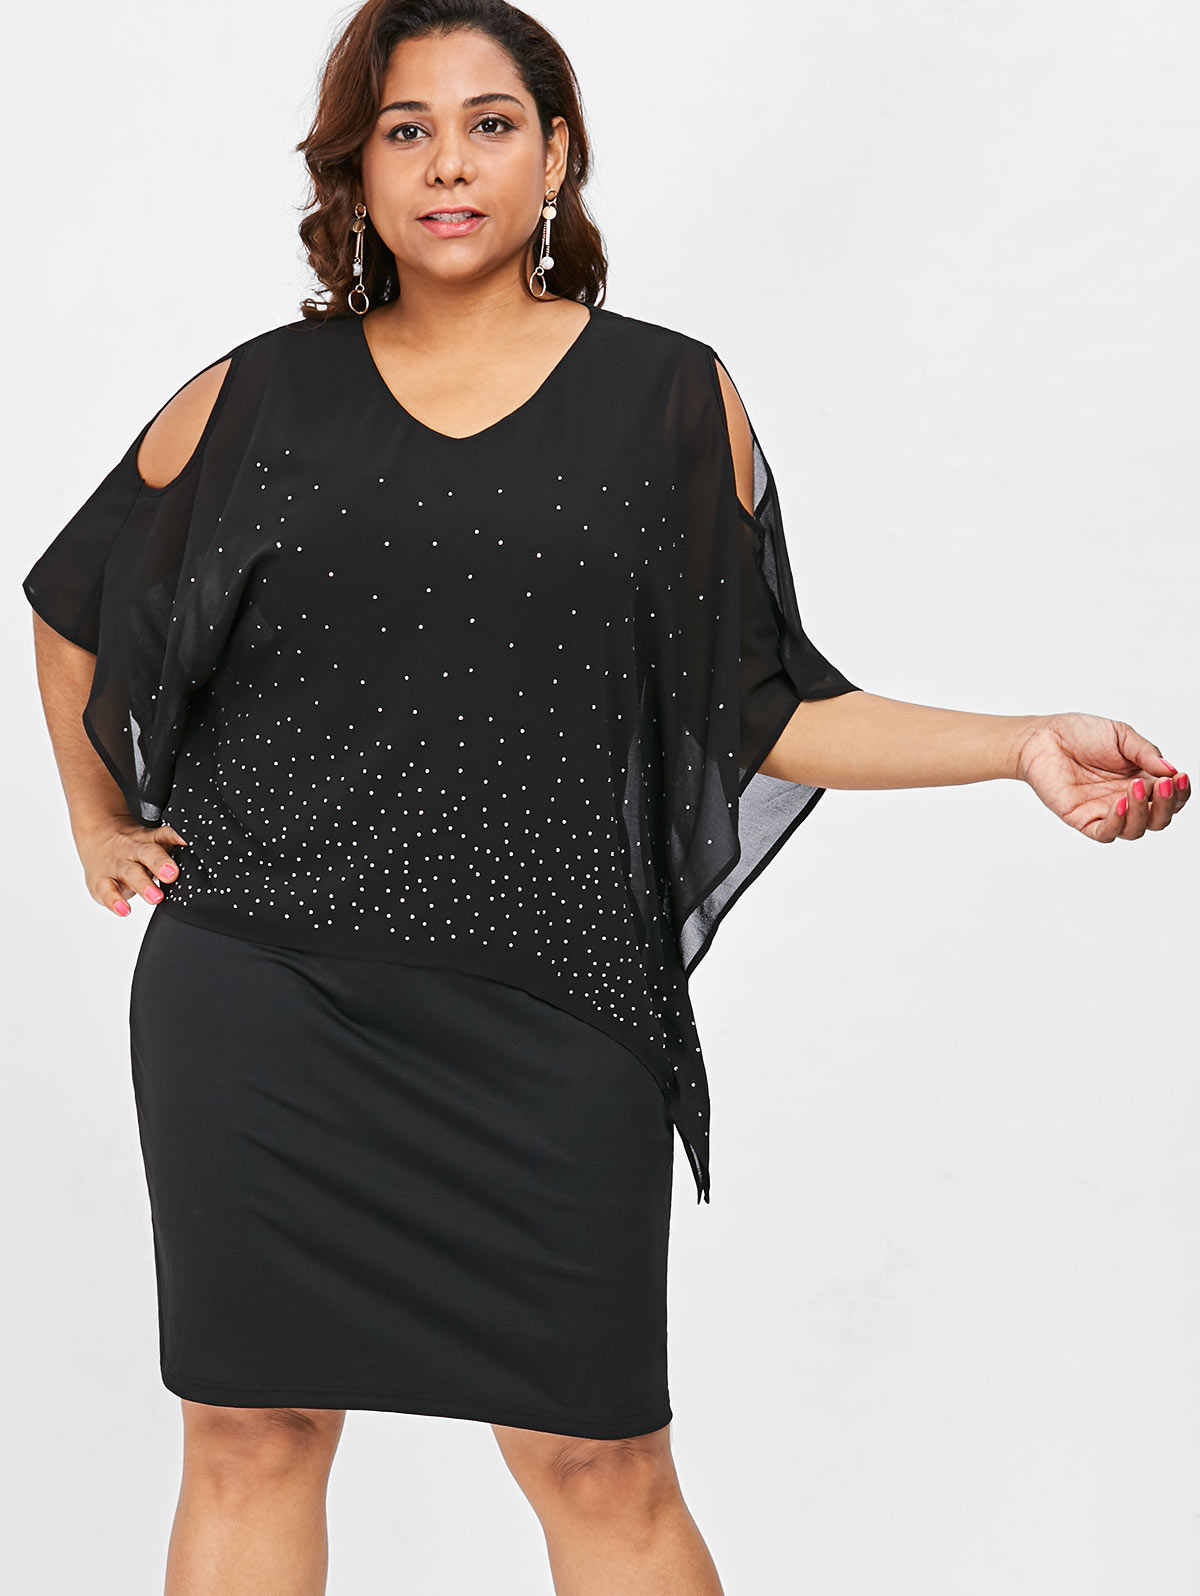 e0a09b7ae8ca8 Detail Feedback Questions about PlusMiss Plus Size Cold Shoulder ...